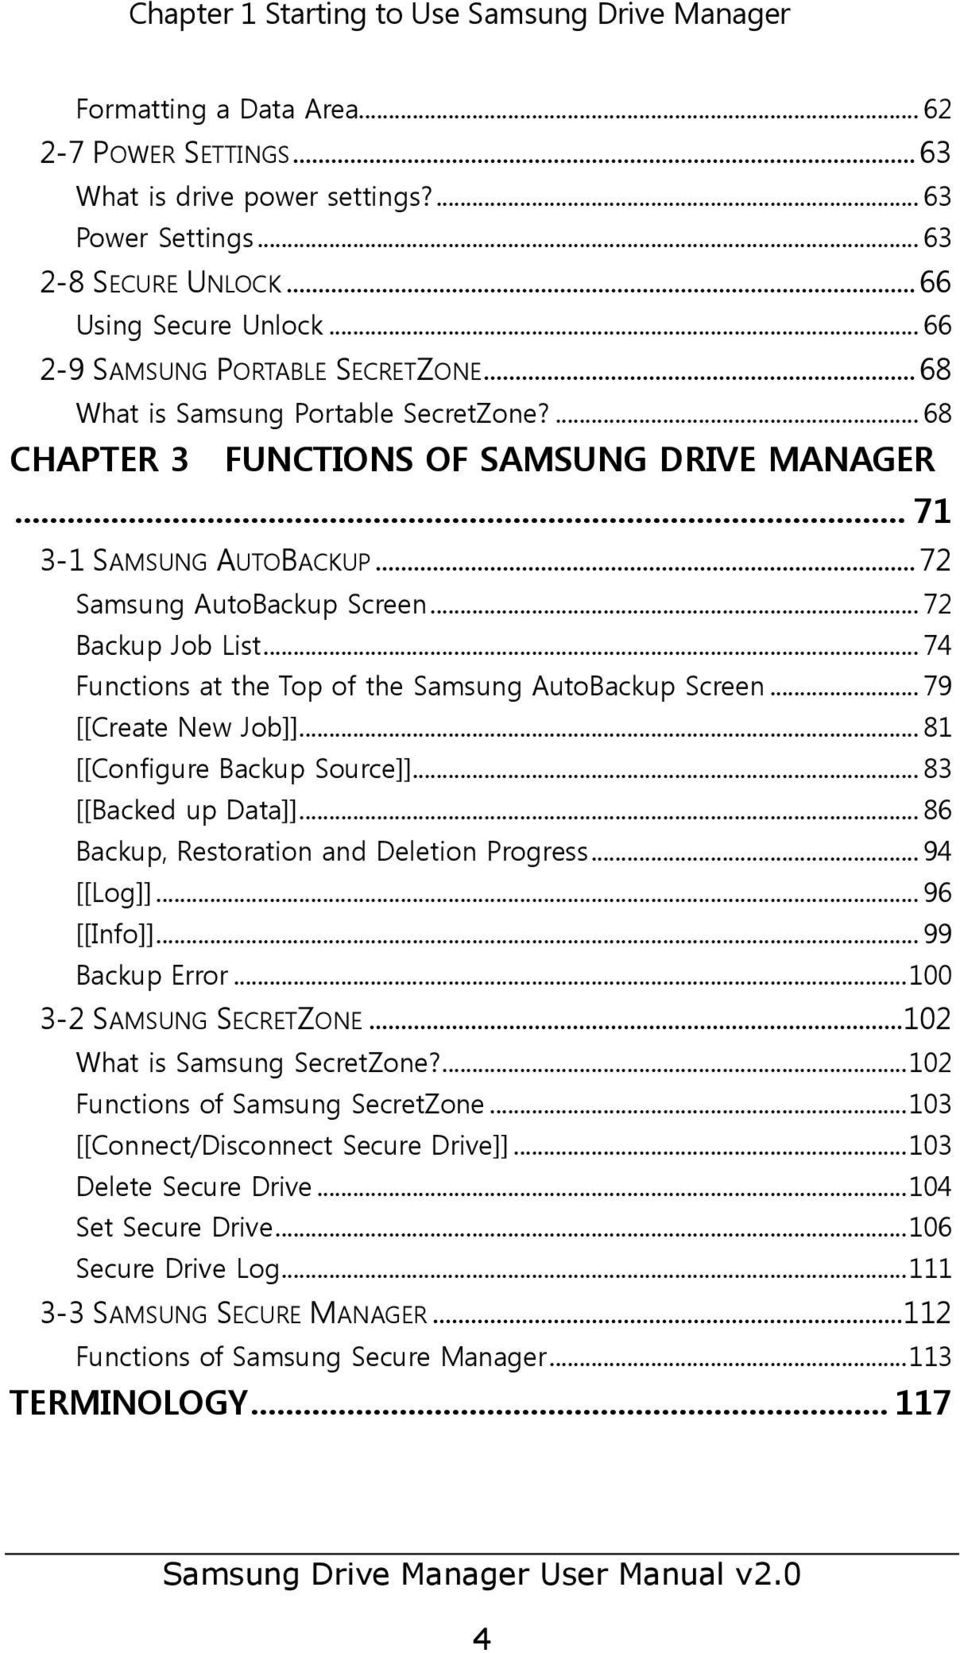 .. 72 Samsung AutoBackup Screen... 72 Backup Job List... 74 Functions at the Top of the Samsung AutoBackup Screen... 79 [[Create New Job]]... 81 [[Configure Backup Source]]... 83 [[Backed up Data]].